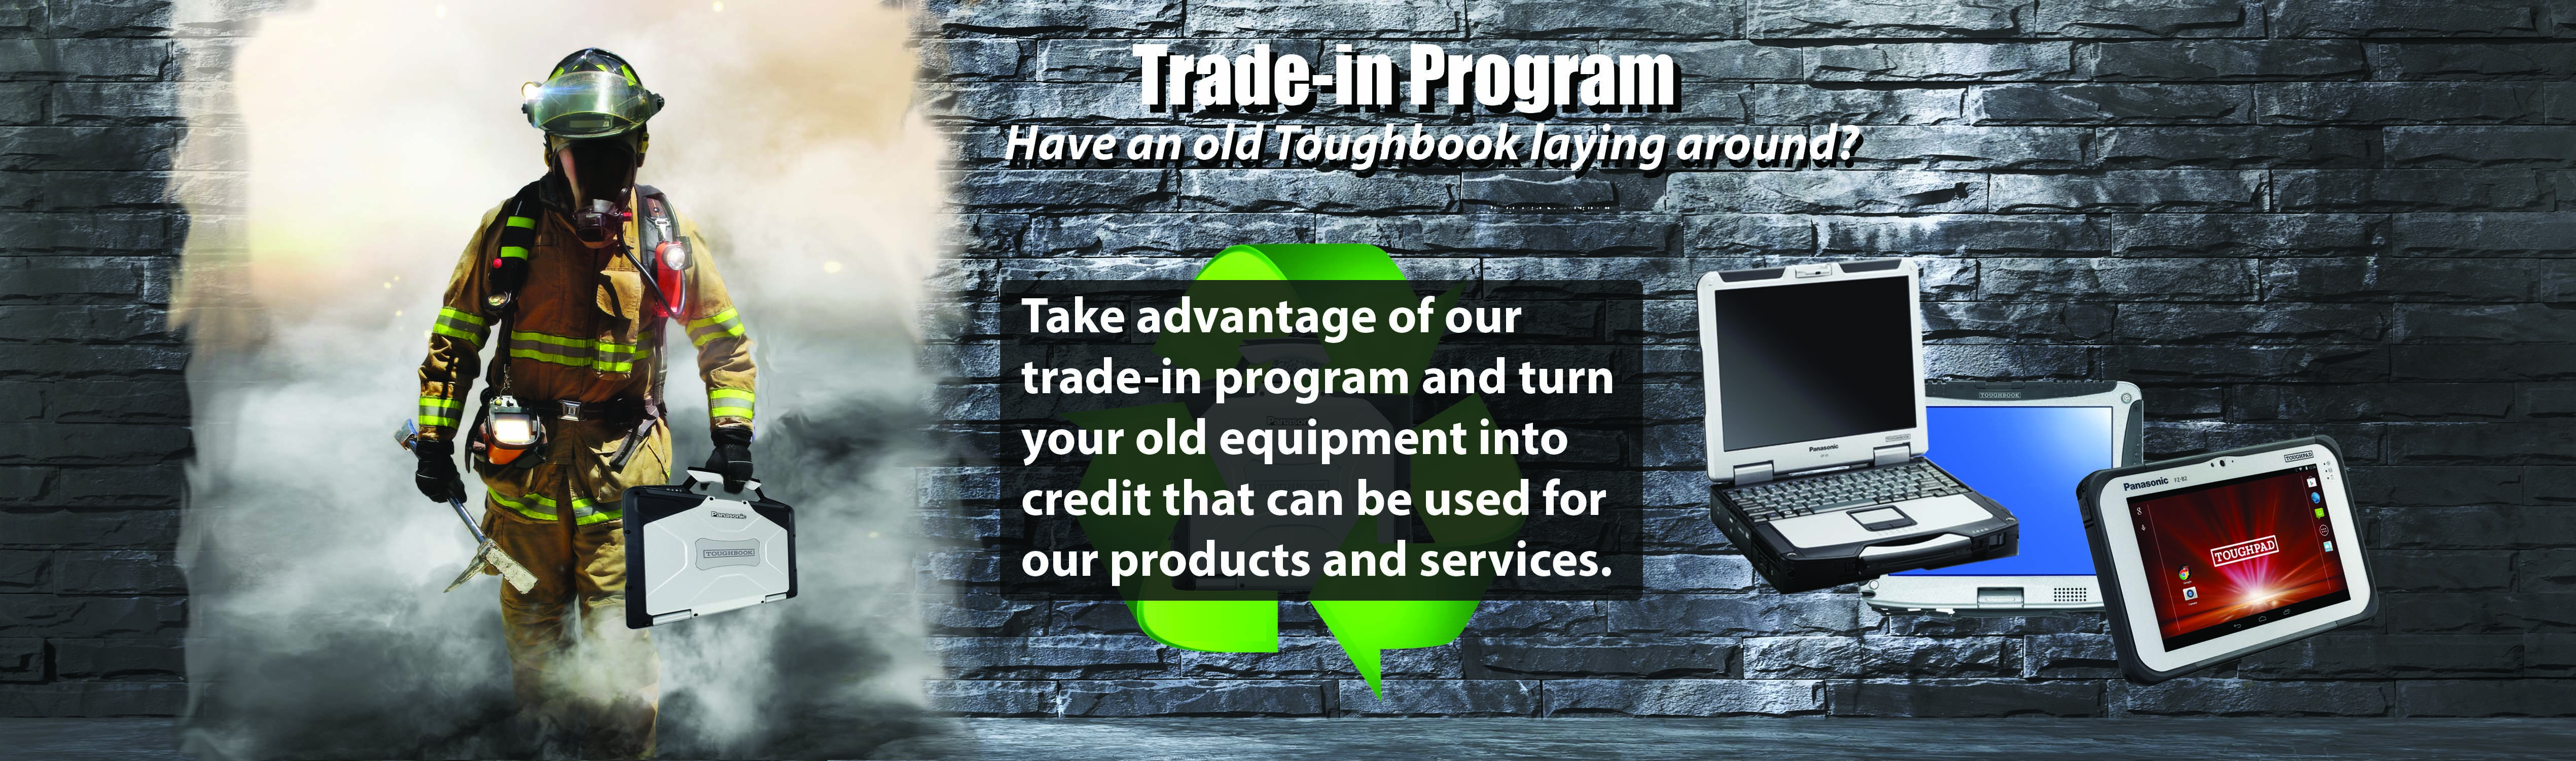 Take advantage of our trade-in program and turn your old Panasonic Toughbooks into credit that can be used for our products and services.